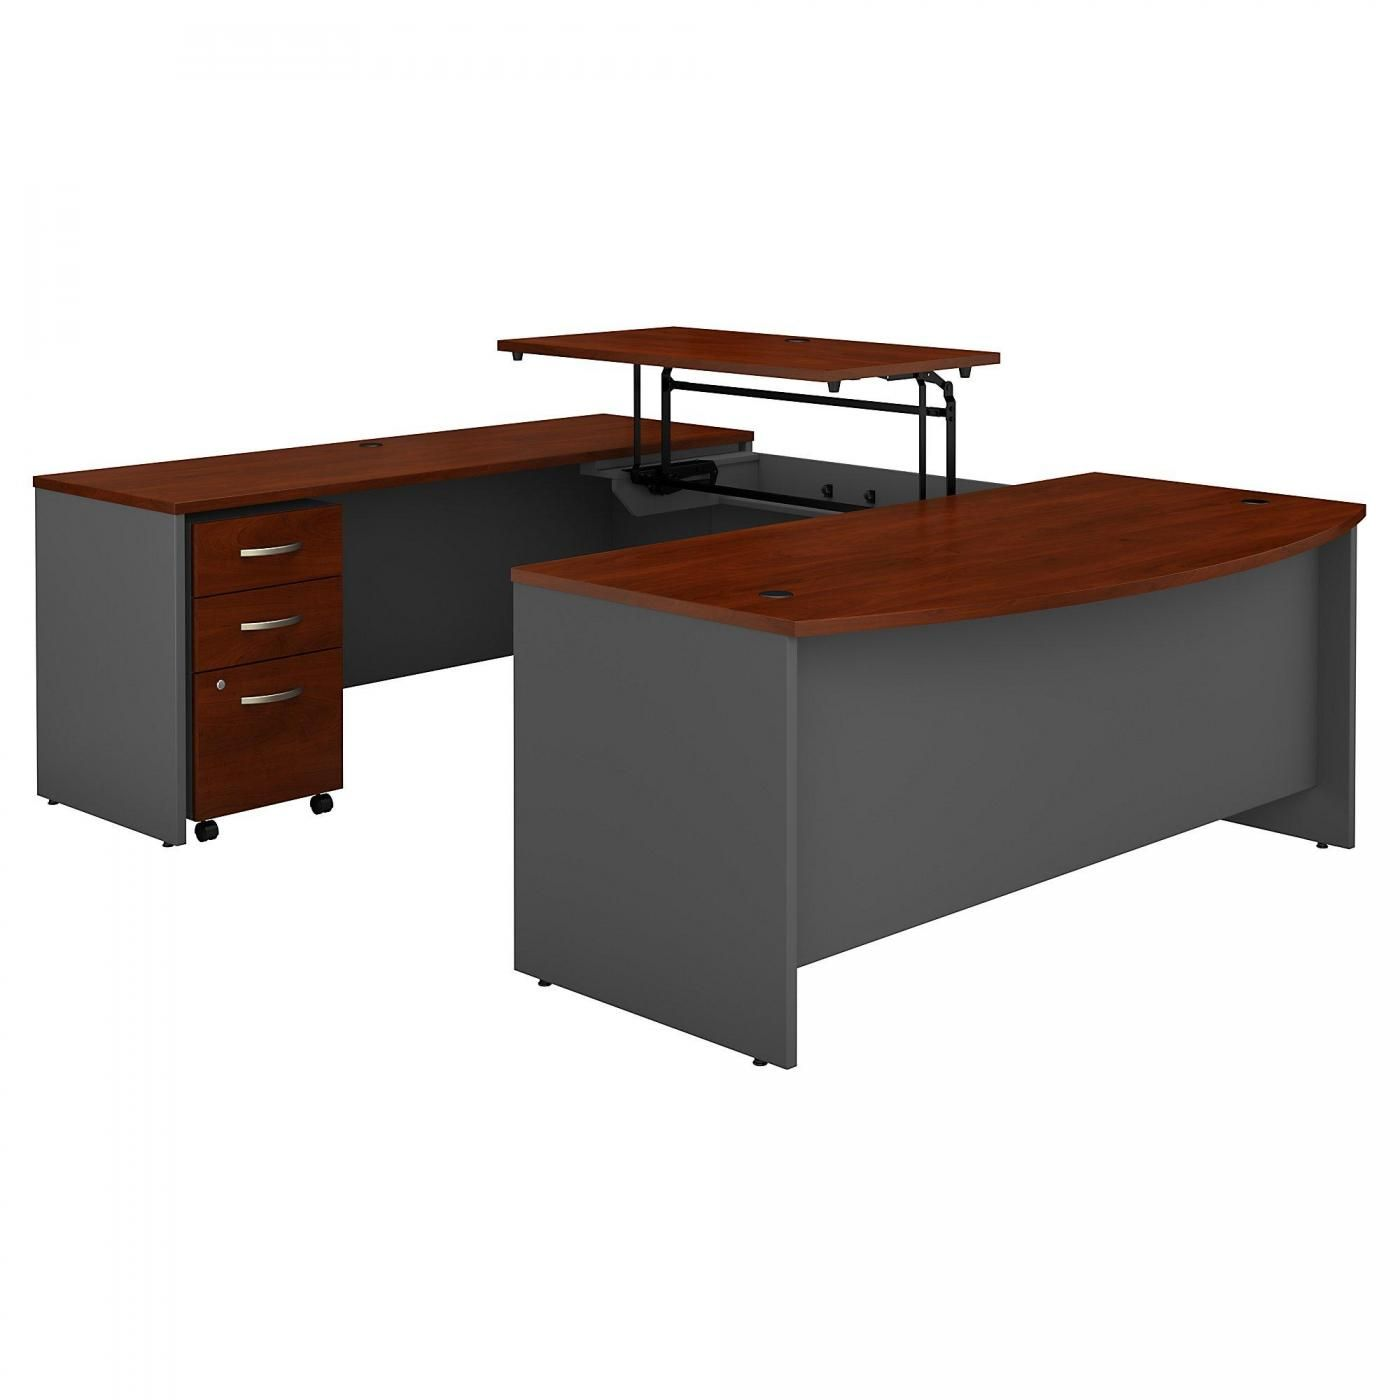 </b></font><b>BUSH BUSINESS FURNITURE SERIES C 72W X 36D 3 POSITION SIT TO STAND BOW FRONT U SHAPED DESK WITH MOBILE FILE CABINET. FREE SHIPPING. VIDEO:</font> <p>RATING:&#11088;&#11088;&#11088;&#11088;&#11088;</b></font></b>